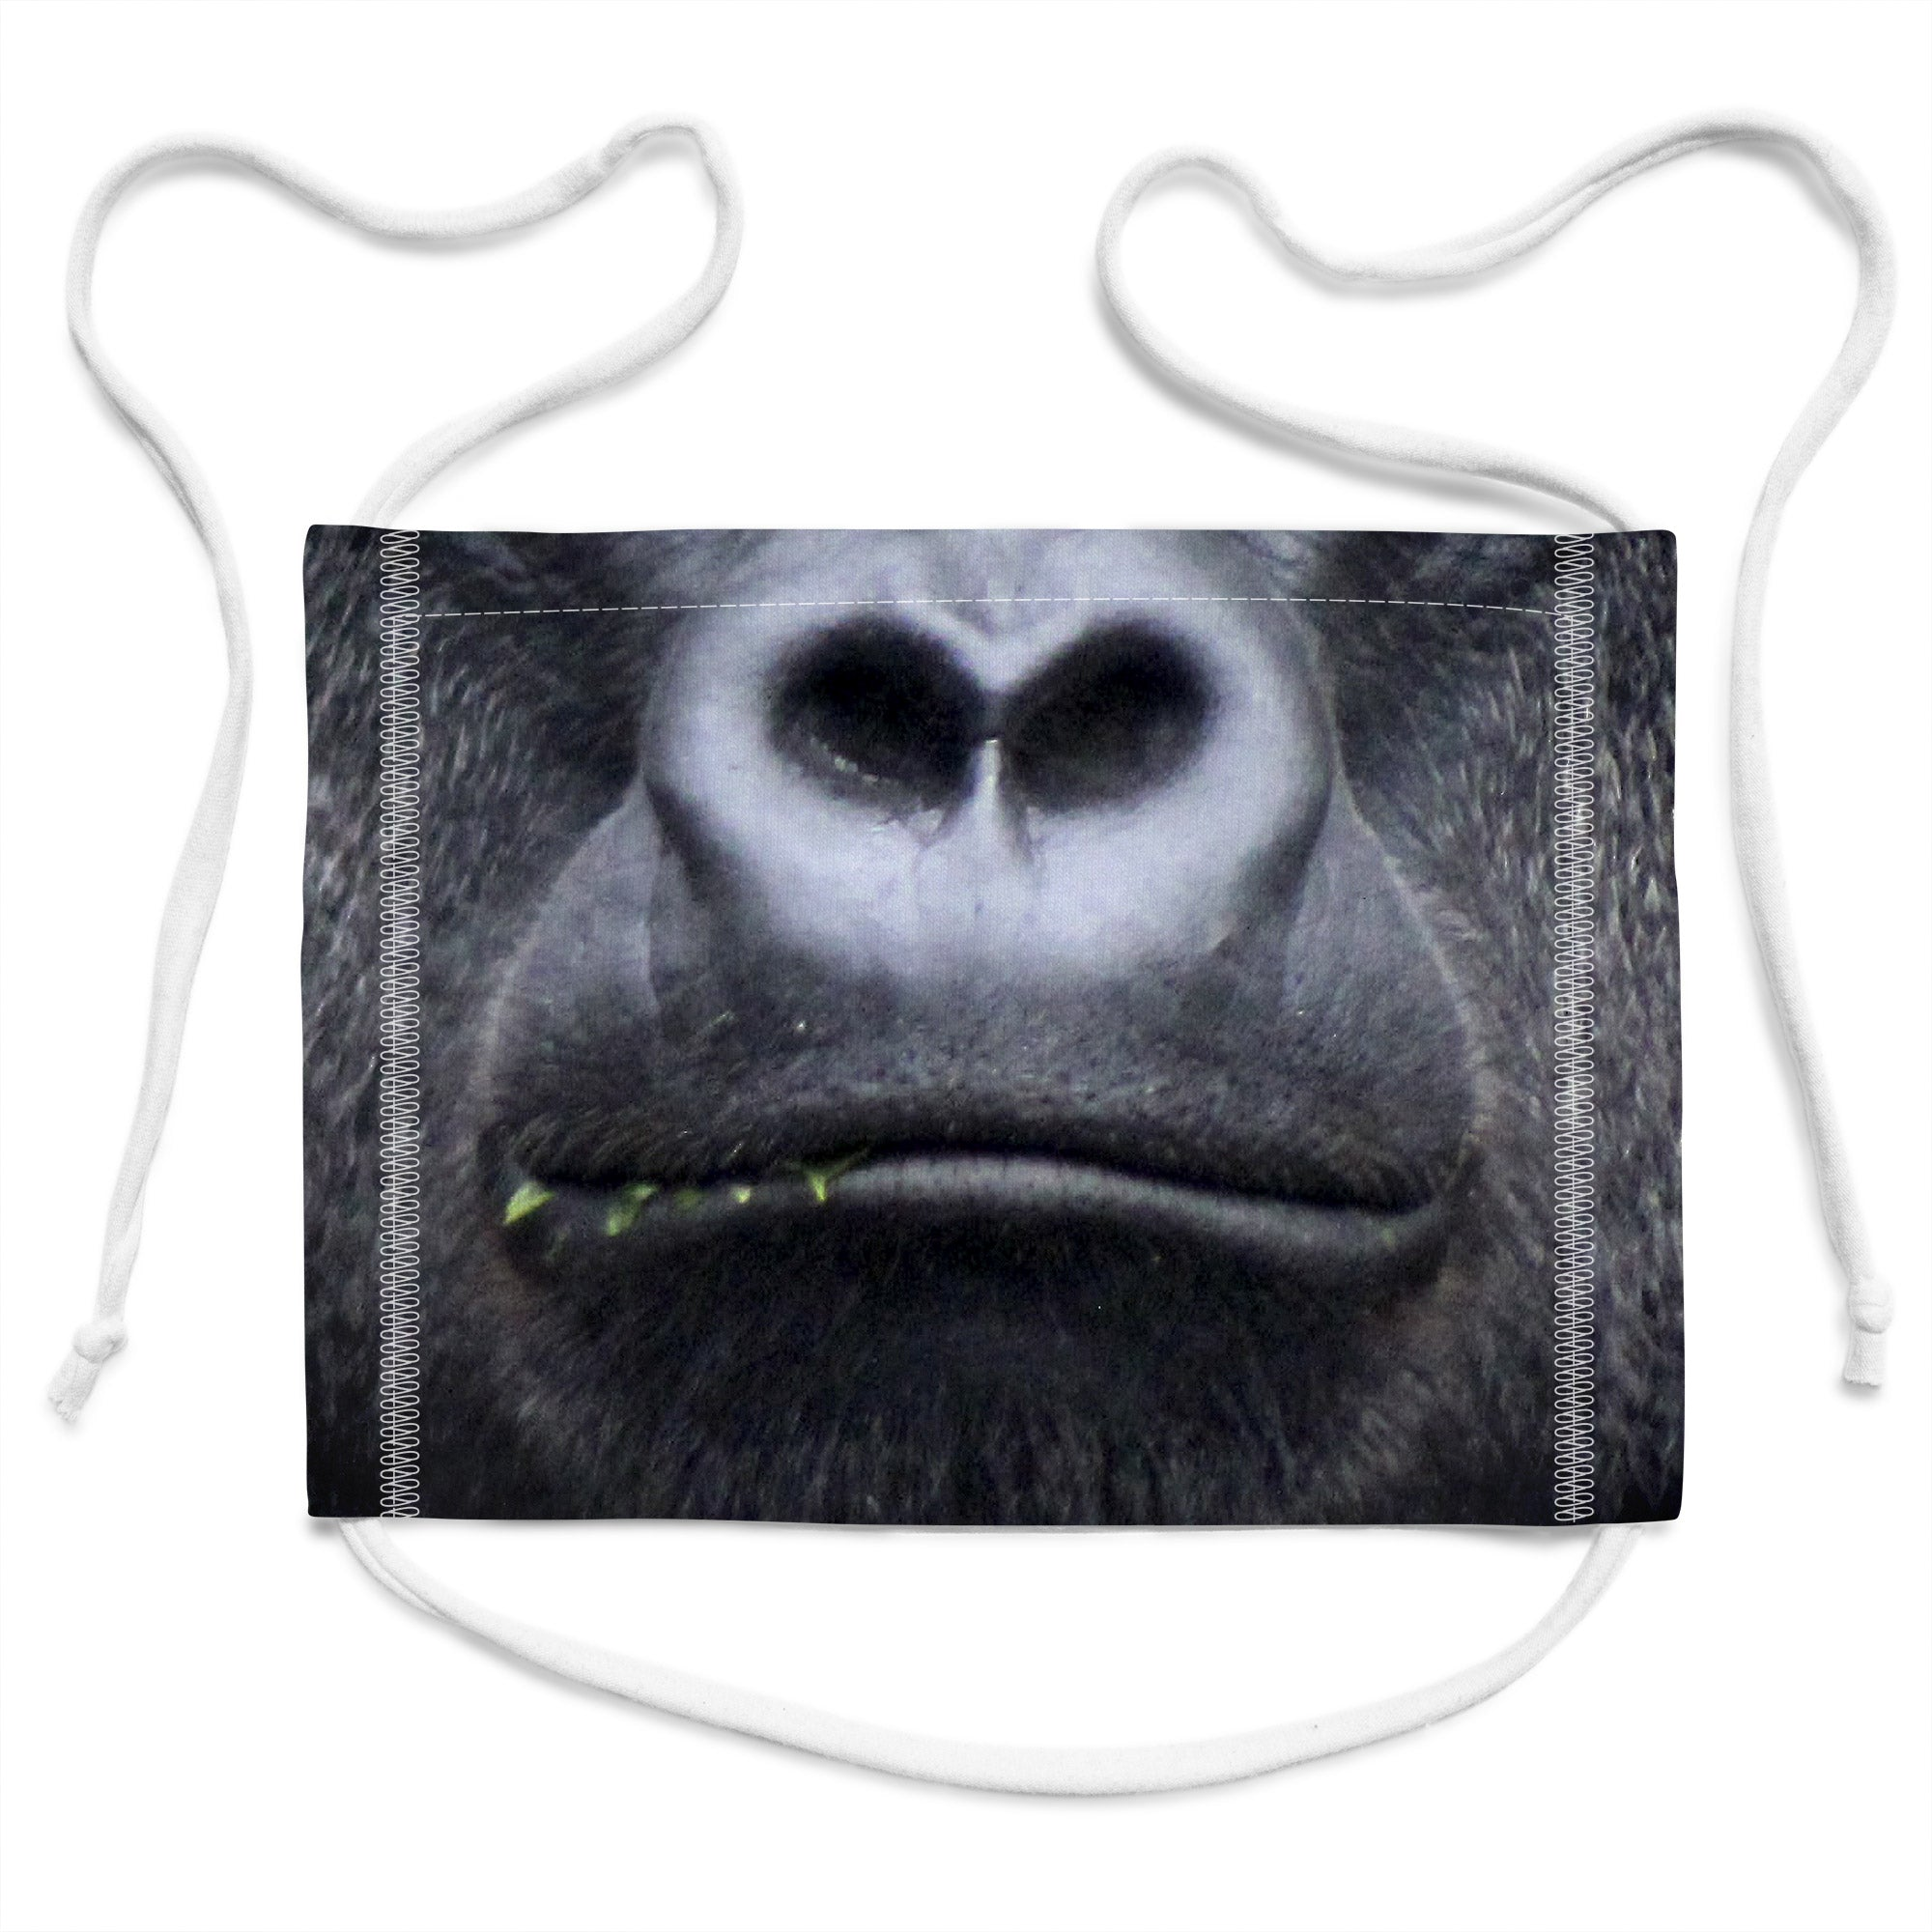 CHEAP Gorilla Face Mask 26654251991 – Clothing Accessories